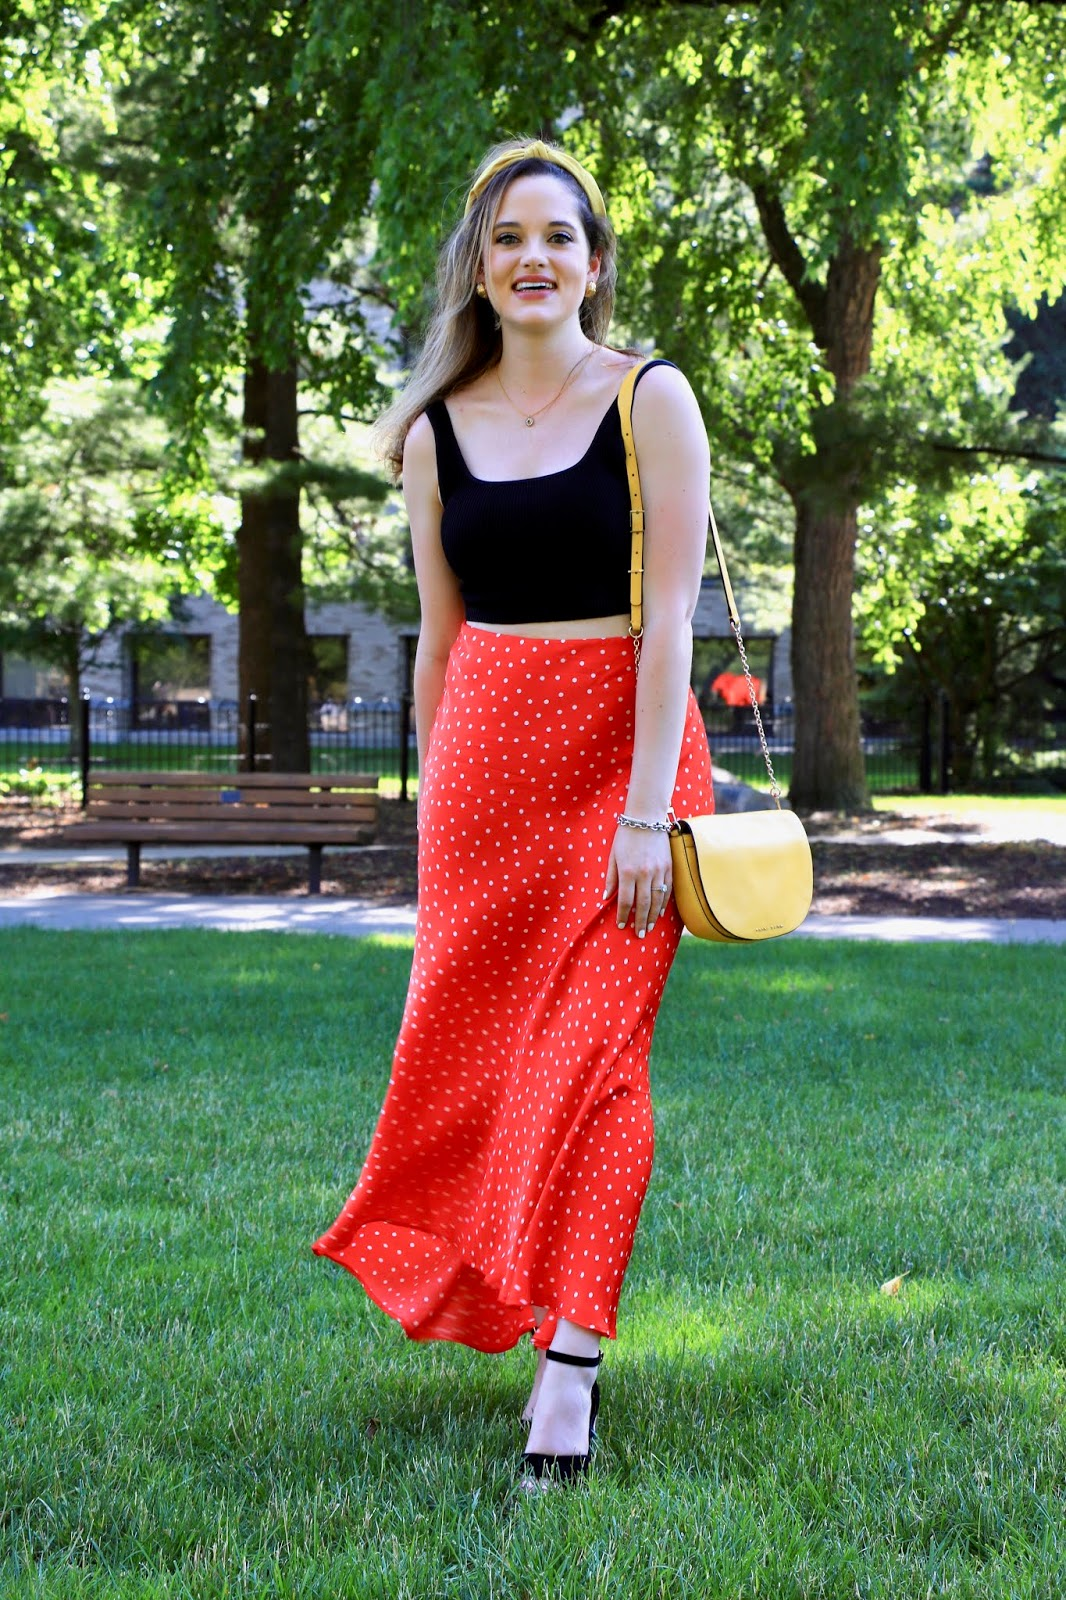 Nyc fashion blogger Kathleen Harper's summer date night outfit idea of a crop top and high-waisted maxi skirt.